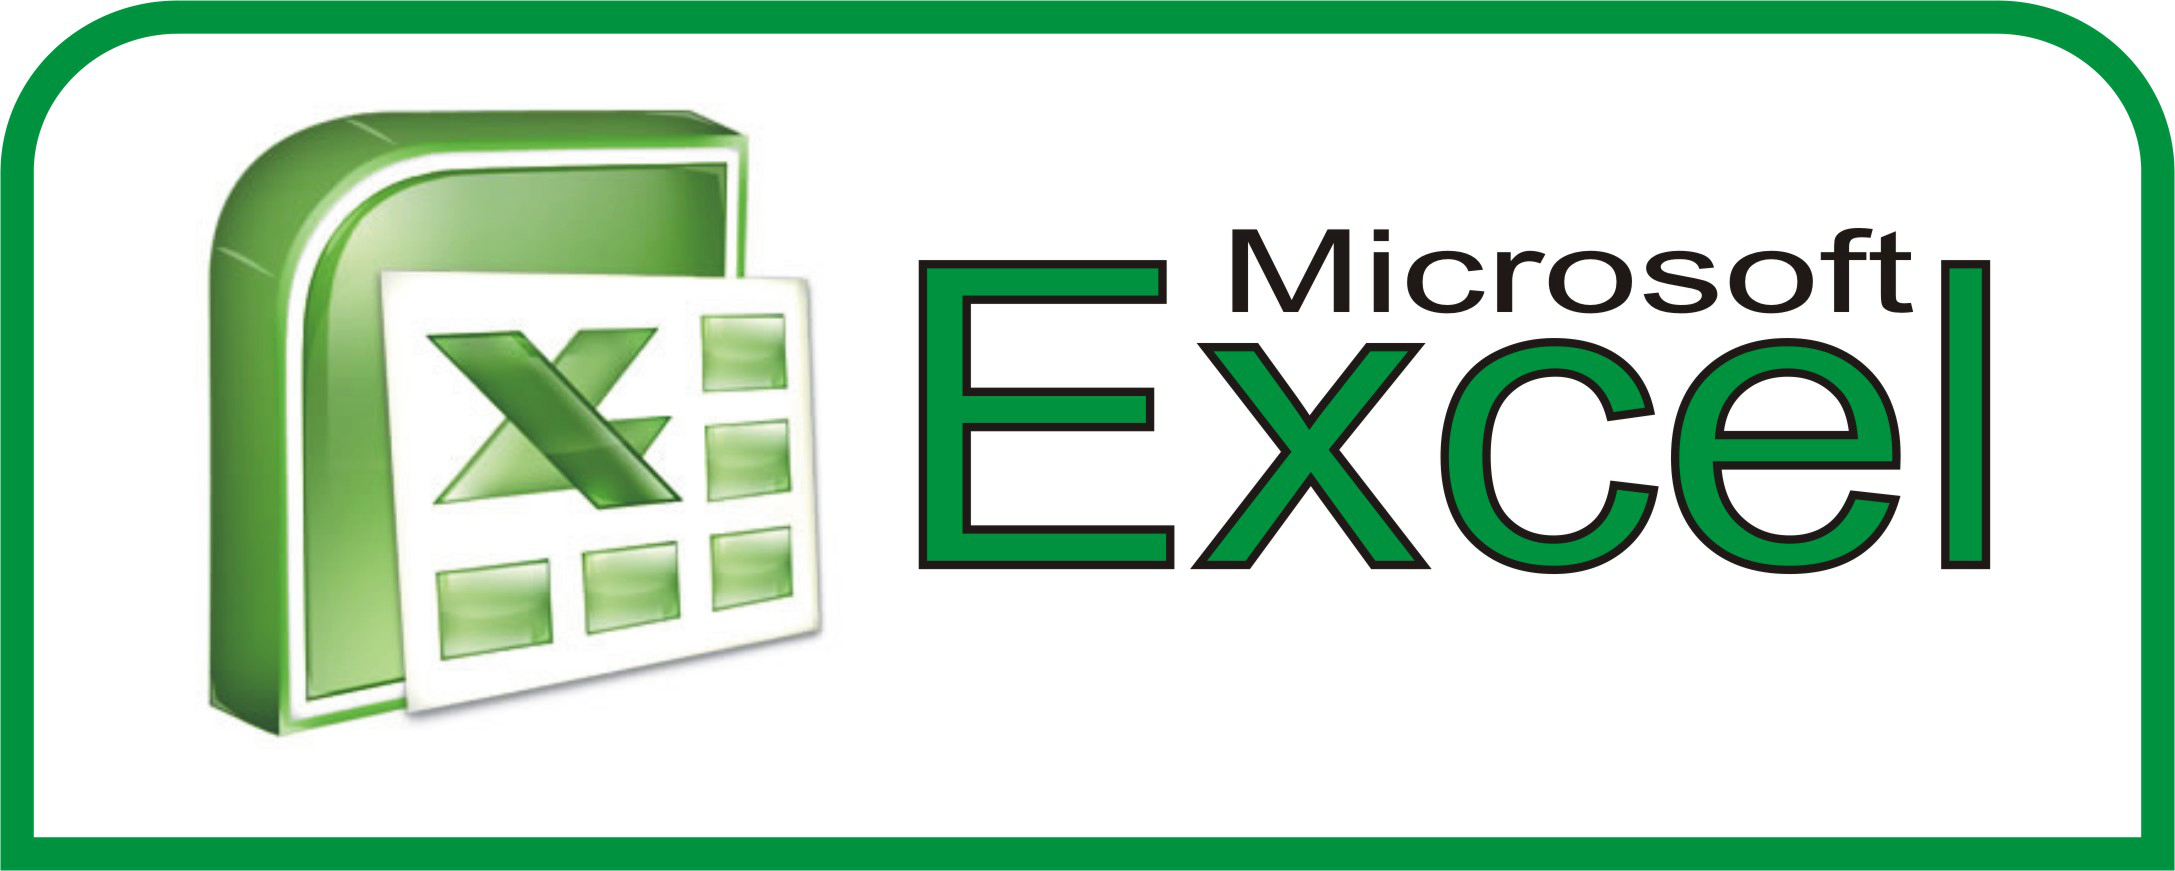 Ediblewildsus  Mesmerizing  Excel Shortcuts You Probably Didnt Know About  Techdissected With Handsome Unhide Tabs Excel Besides Making A Line Graph On Excel Furthermore Excel Random String With Cute Timesheet On Excel Also Import Excel Into Excel In Addition Excel Word Art And Steam Tables Excel As Well As How To Create Flow Charts In Excel Additionally How Do You Add Up Columns In Excel From Techdissectedcom With Ediblewildsus  Handsome  Excel Shortcuts You Probably Didnt Know About  Techdissected With Cute Unhide Tabs Excel Besides Making A Line Graph On Excel Furthermore Excel Random String And Mesmerizing Timesheet On Excel Also Import Excel Into Excel In Addition Excel Word Art From Techdissectedcom